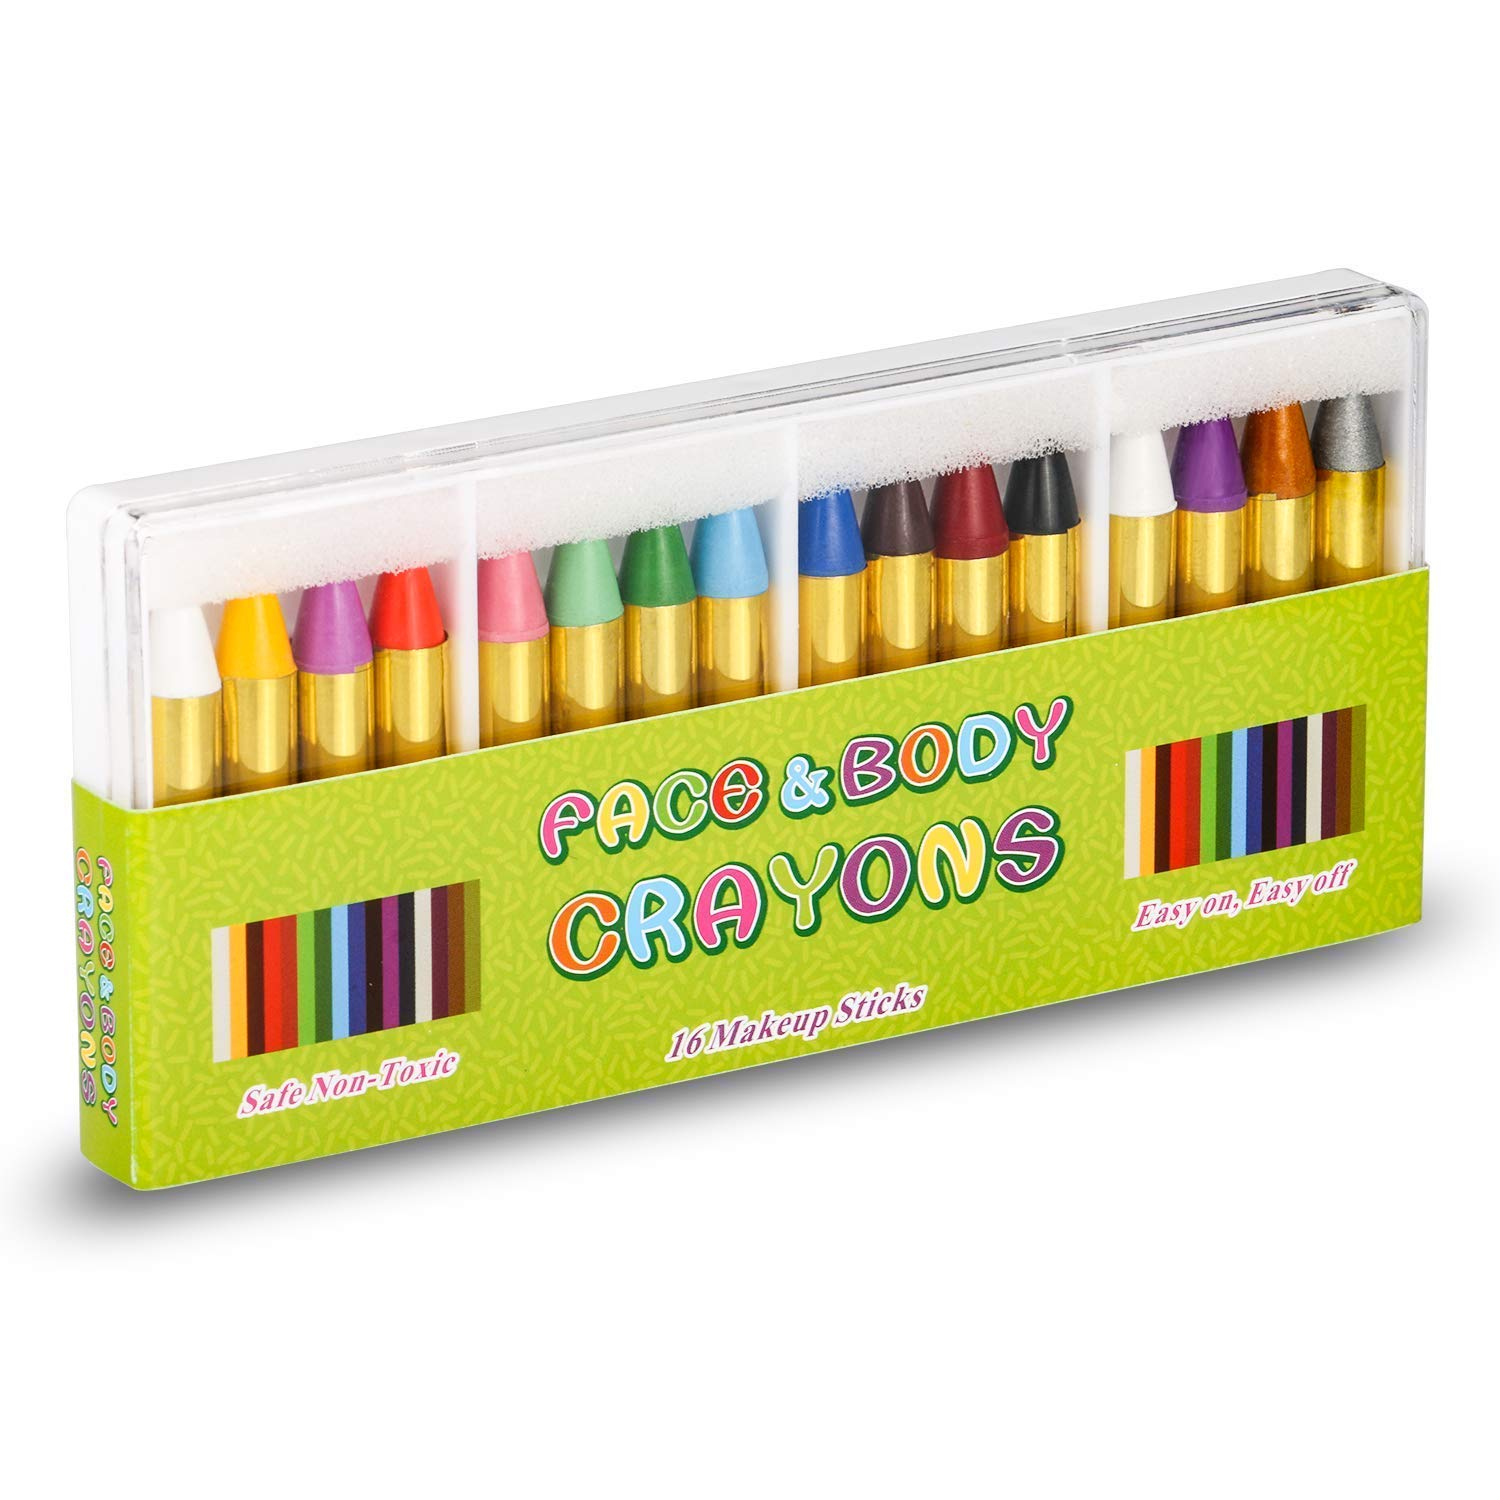 Face Paint Crayon Face Painting Kit for Kids, 16 Color Face and Body Crayons Safe & Non Toxic Washable Face Paint Halloween Cosplay Festival Makeup Body Paint for Toddler, Children, Adult,Teen, Boy UNEEDE